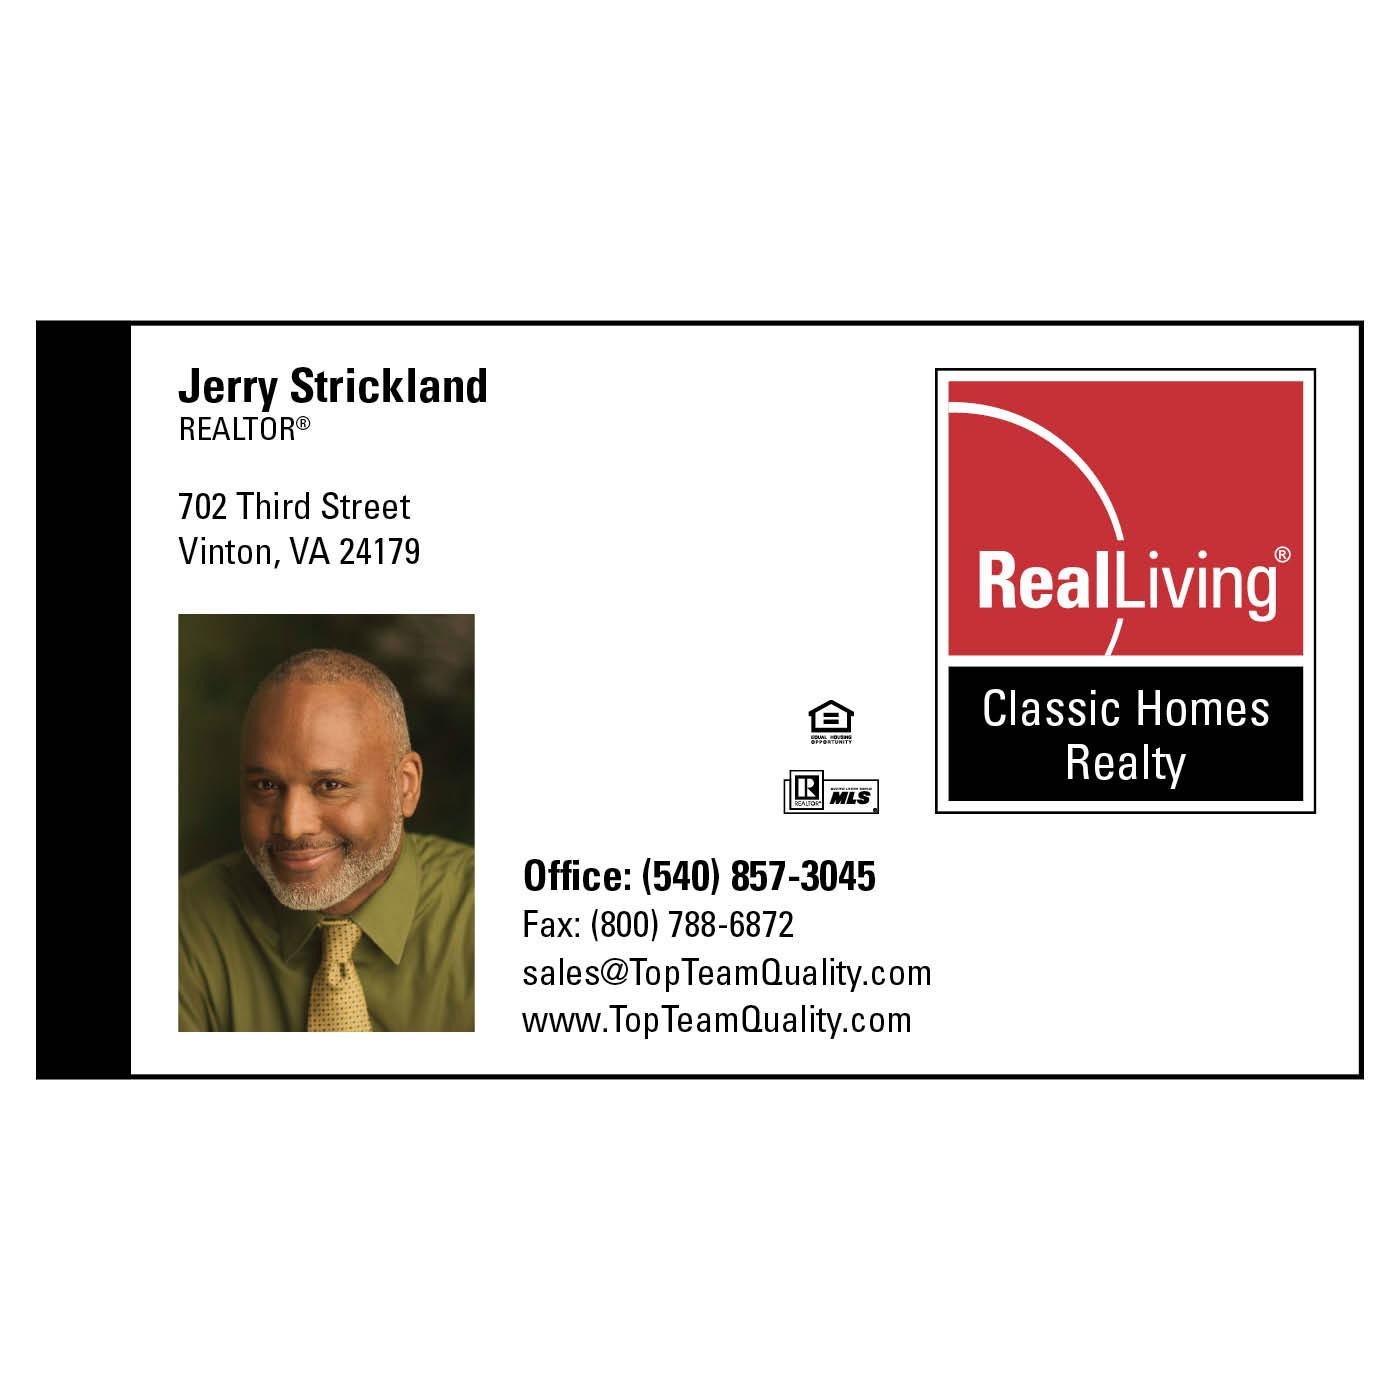 Real Living Classic Homes Realty